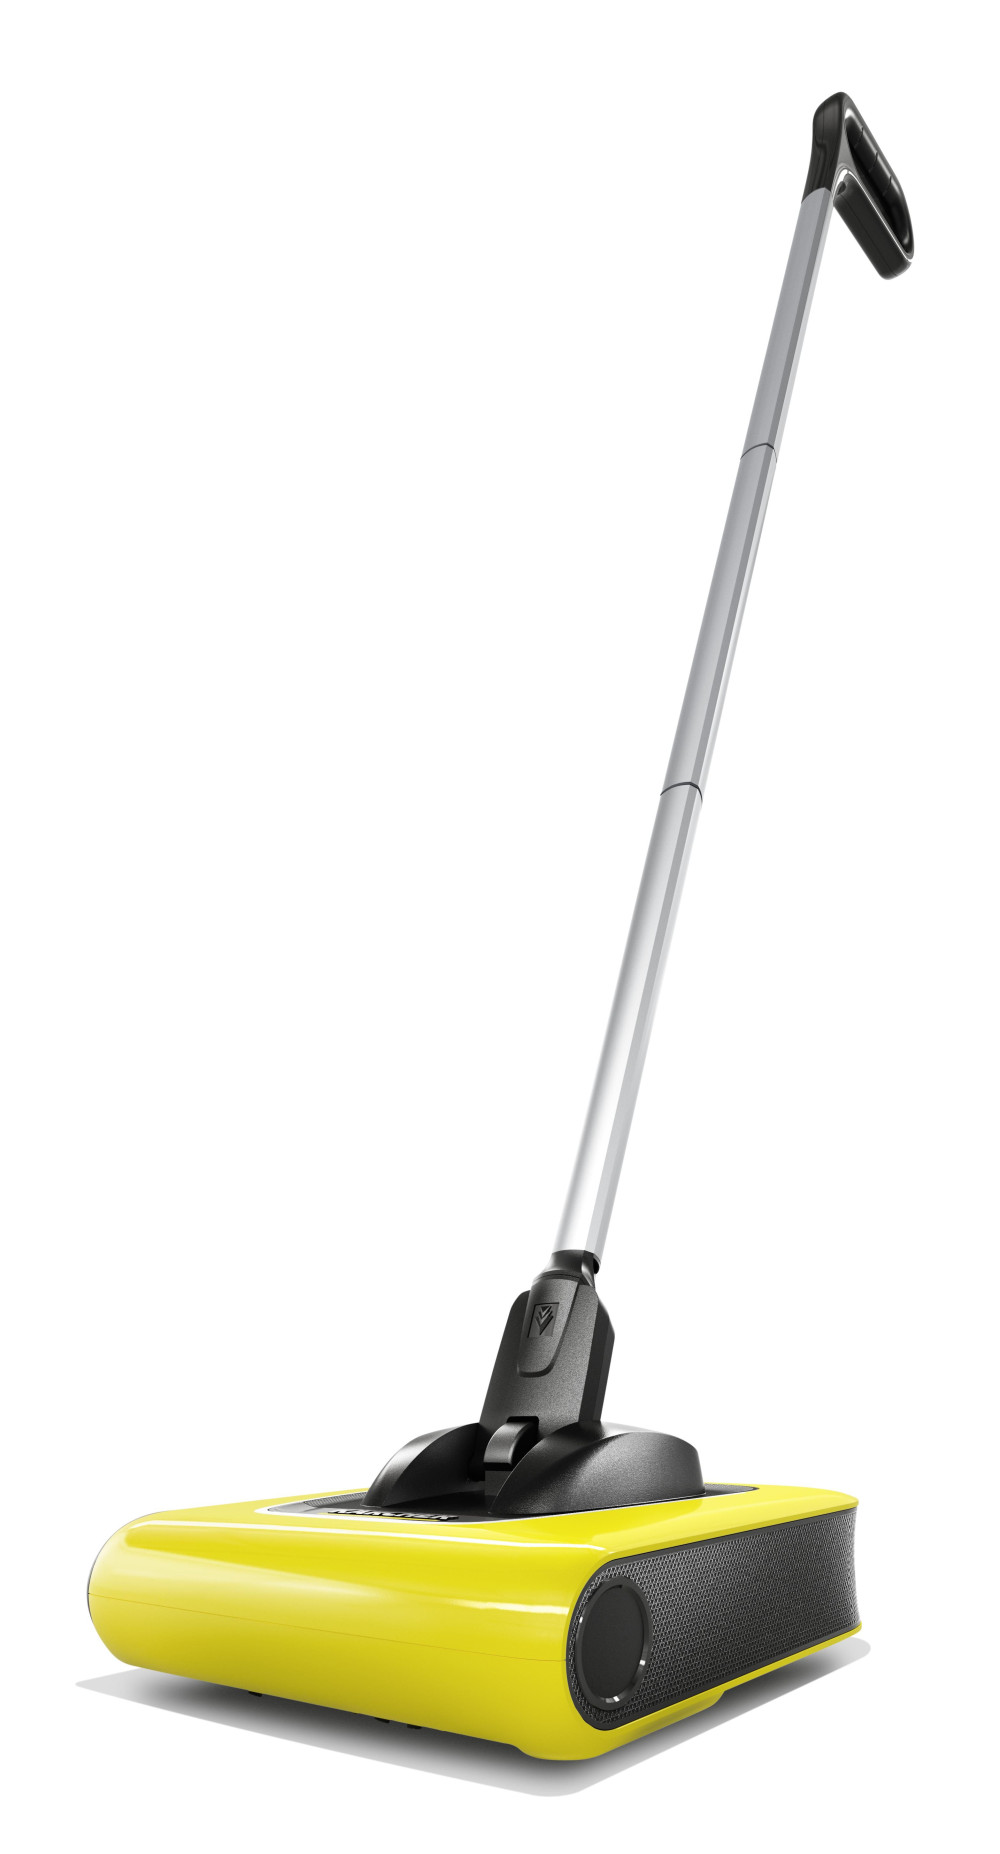 Kärcher KB5 Cordless Electric Broom featured image